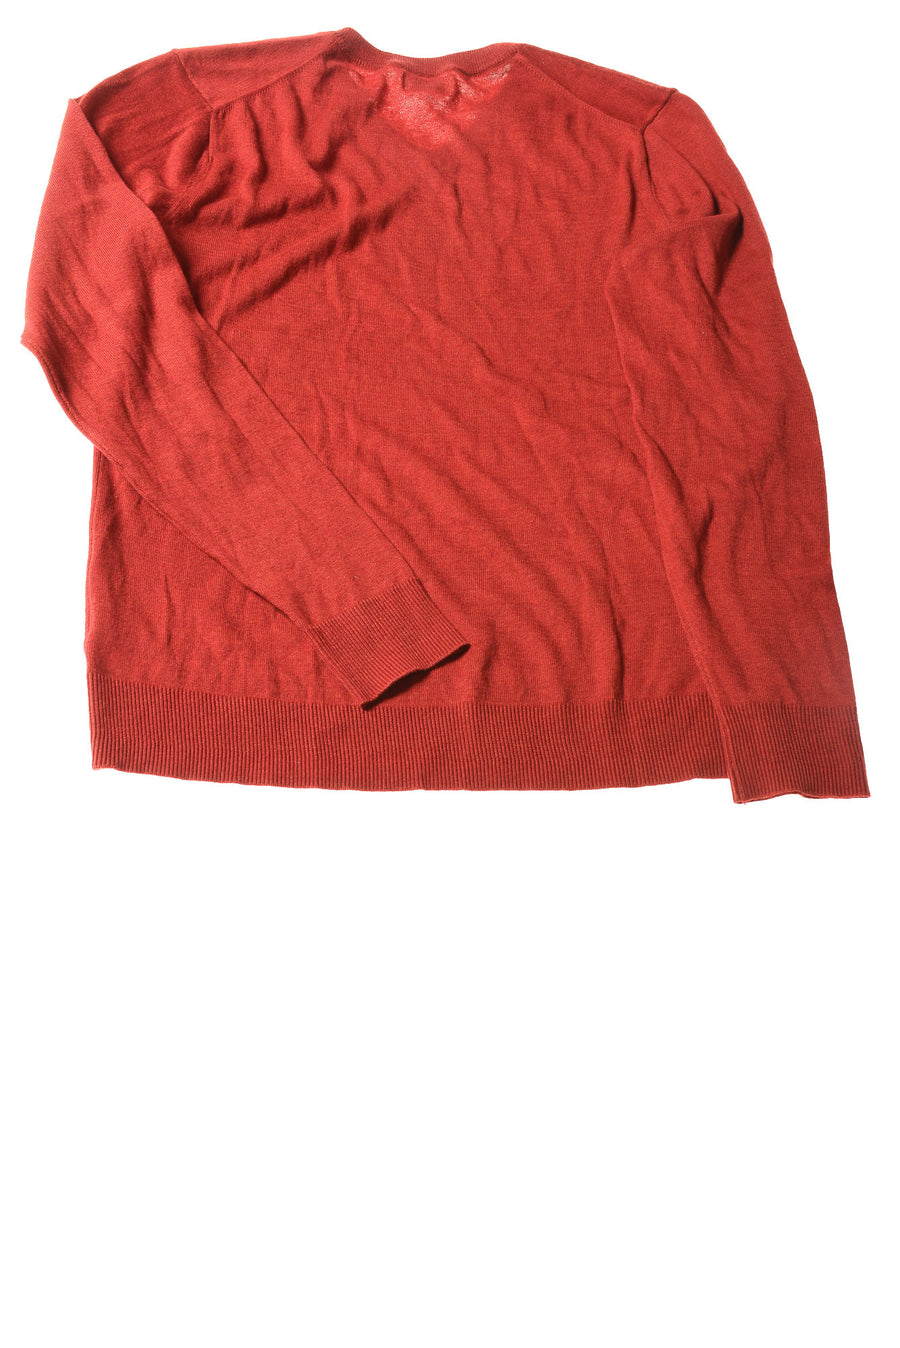 NEW Old Navy Men's Sweater Medium Rust